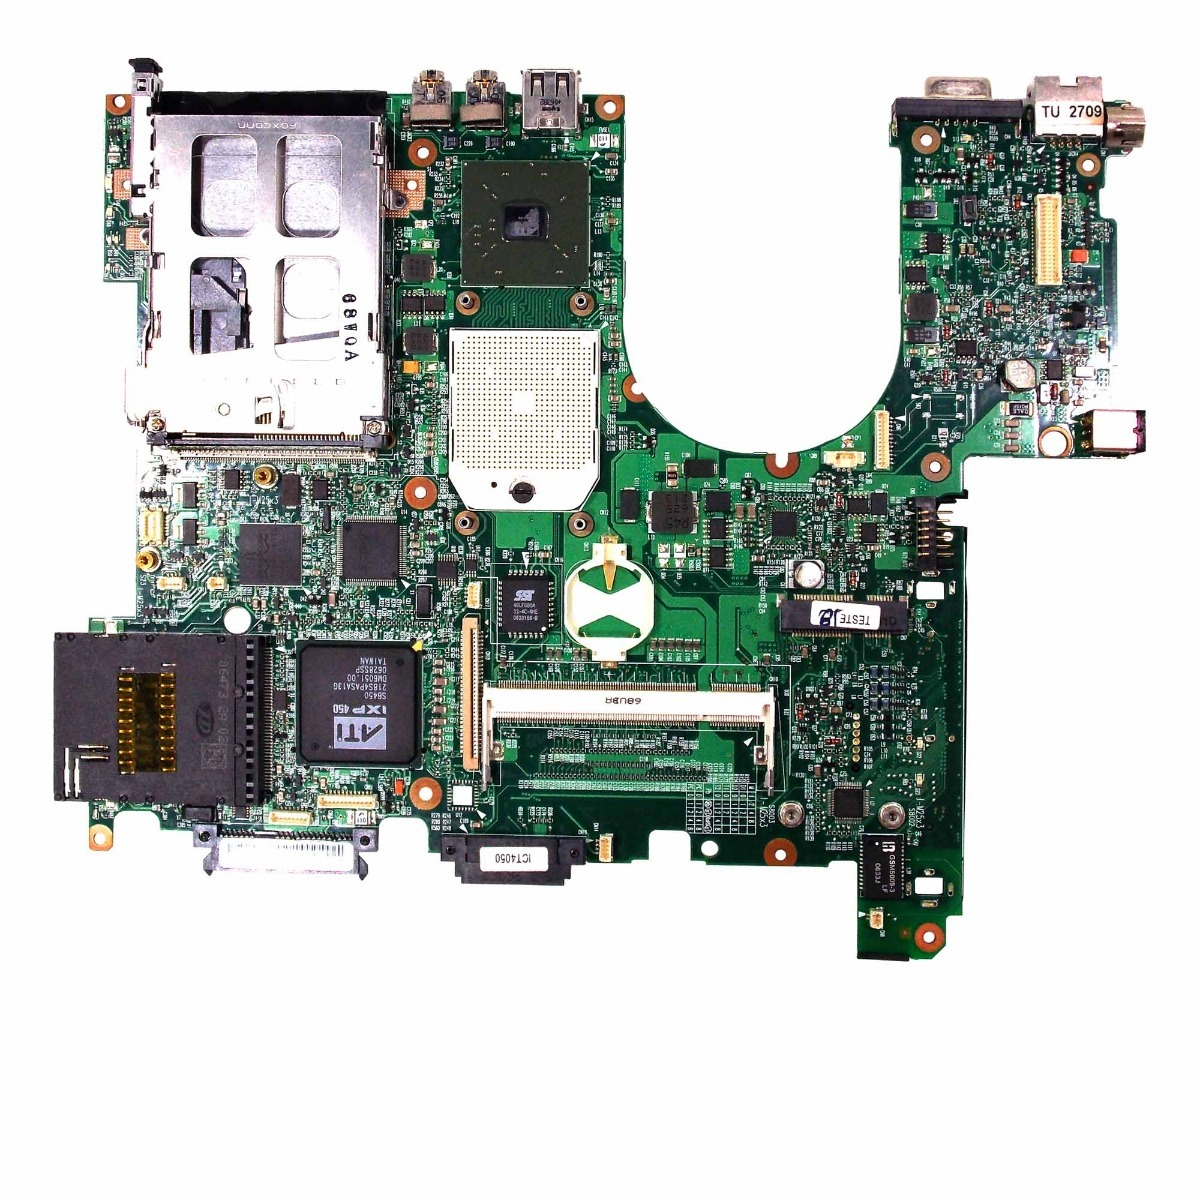 DOWNLOAD DRIVERS: COMPAQ NX6320 MOTHERBOARD